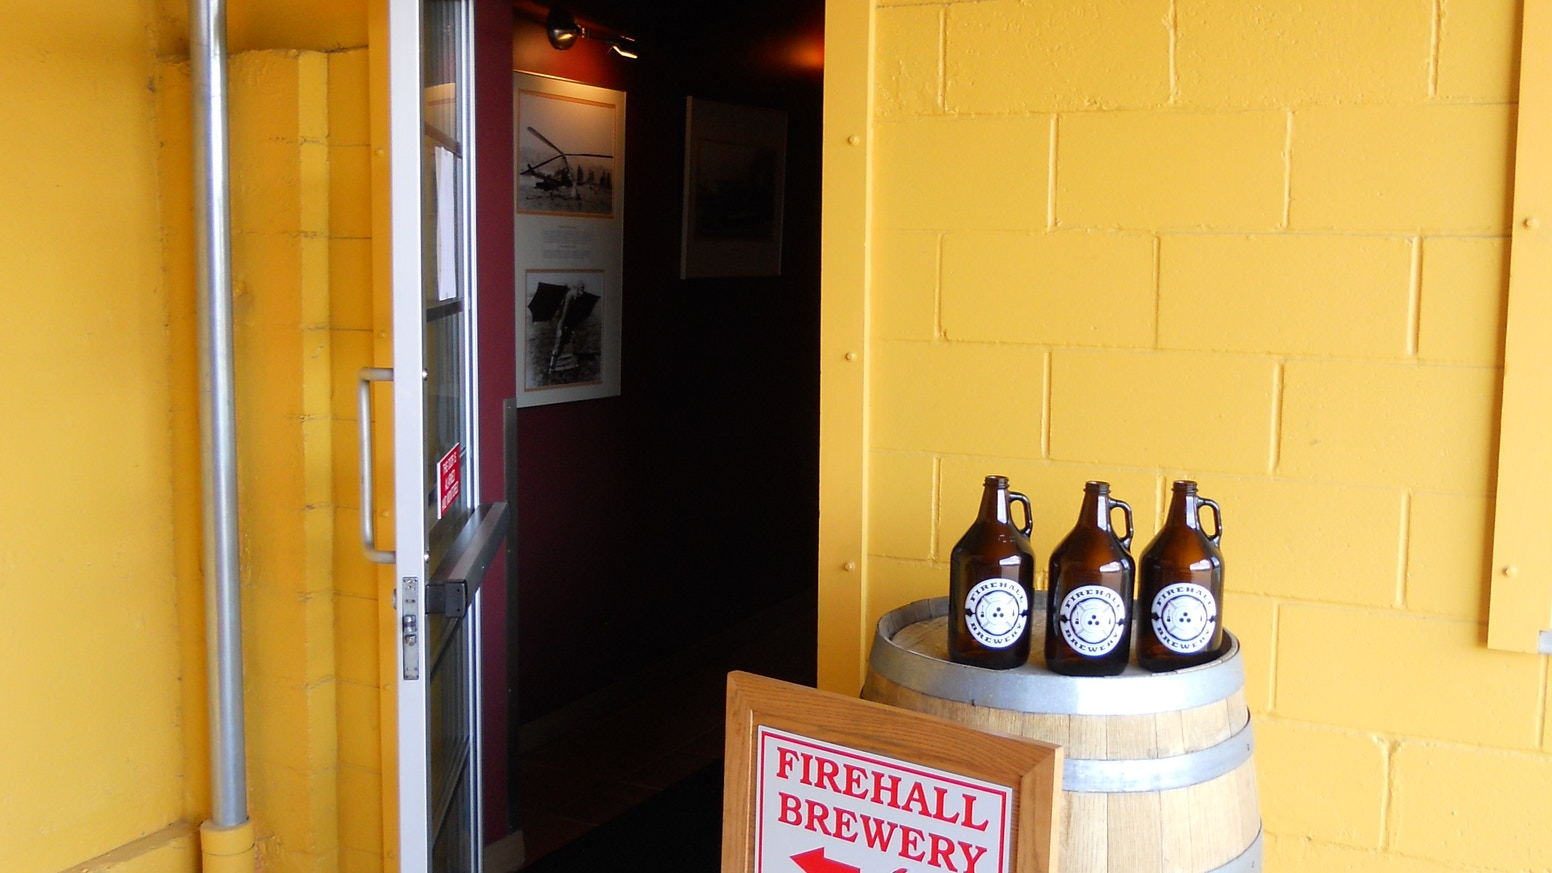 Beer is freshest at the source. So it's about time we add a retail beer shop to the Old Firehall.